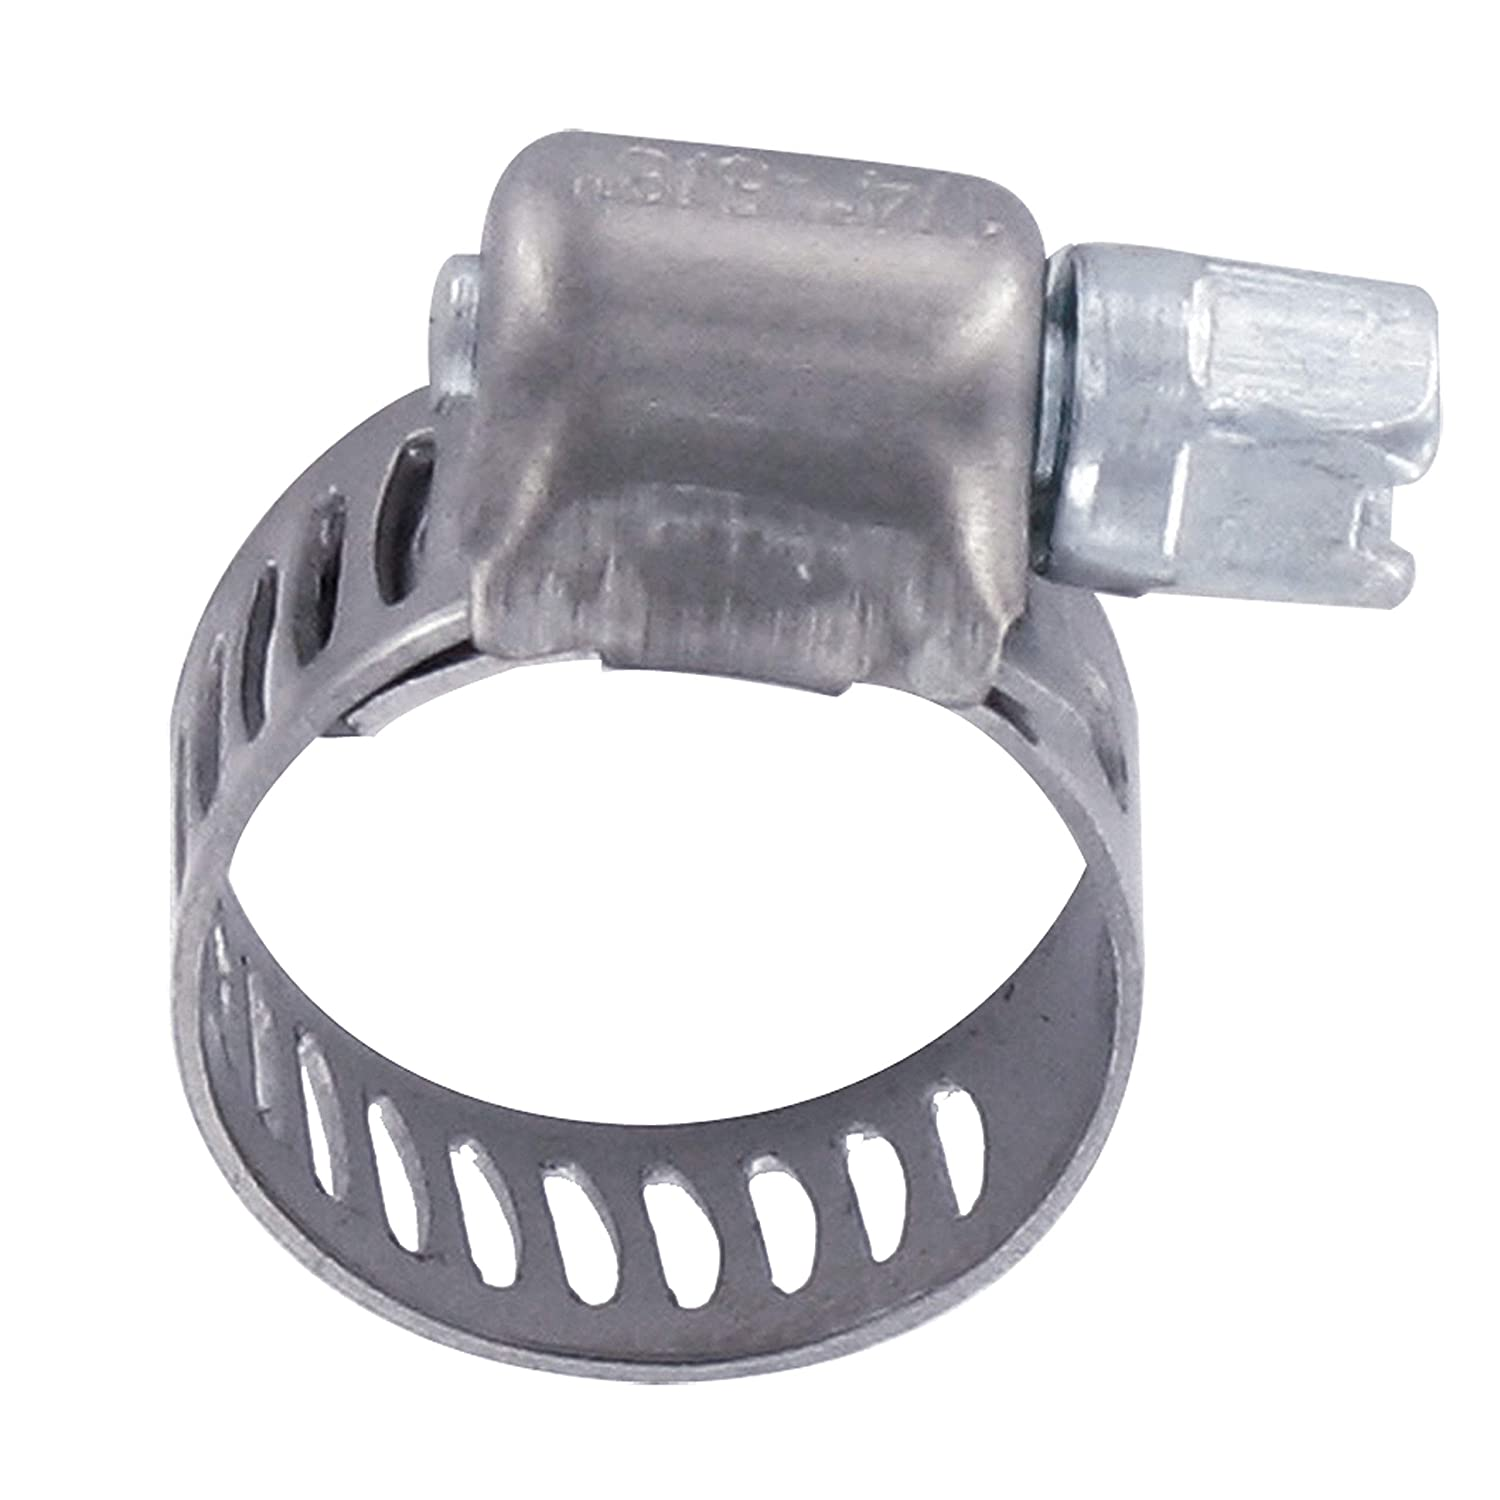 Silver 1//2 x 1-1//16 Stainless Steel Hose Clamp H03-0002 Valterra